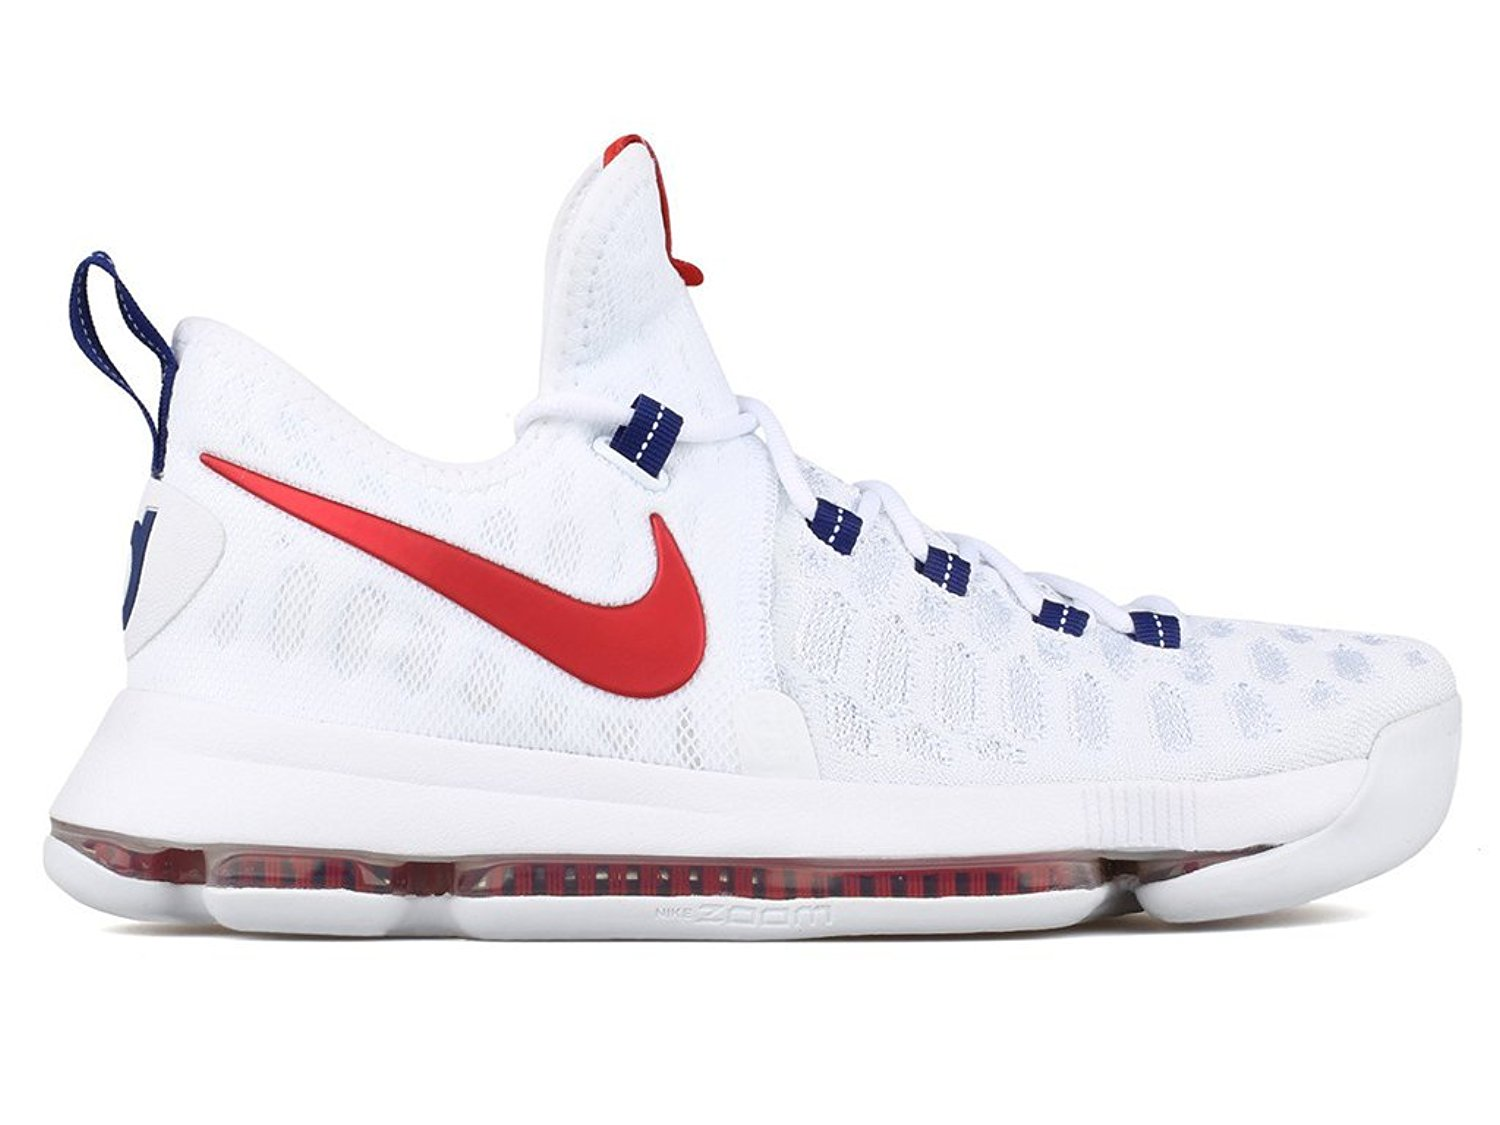 5bf6372492f1 Get Quotations · Nike Mens KD 9 Basketball Shoe